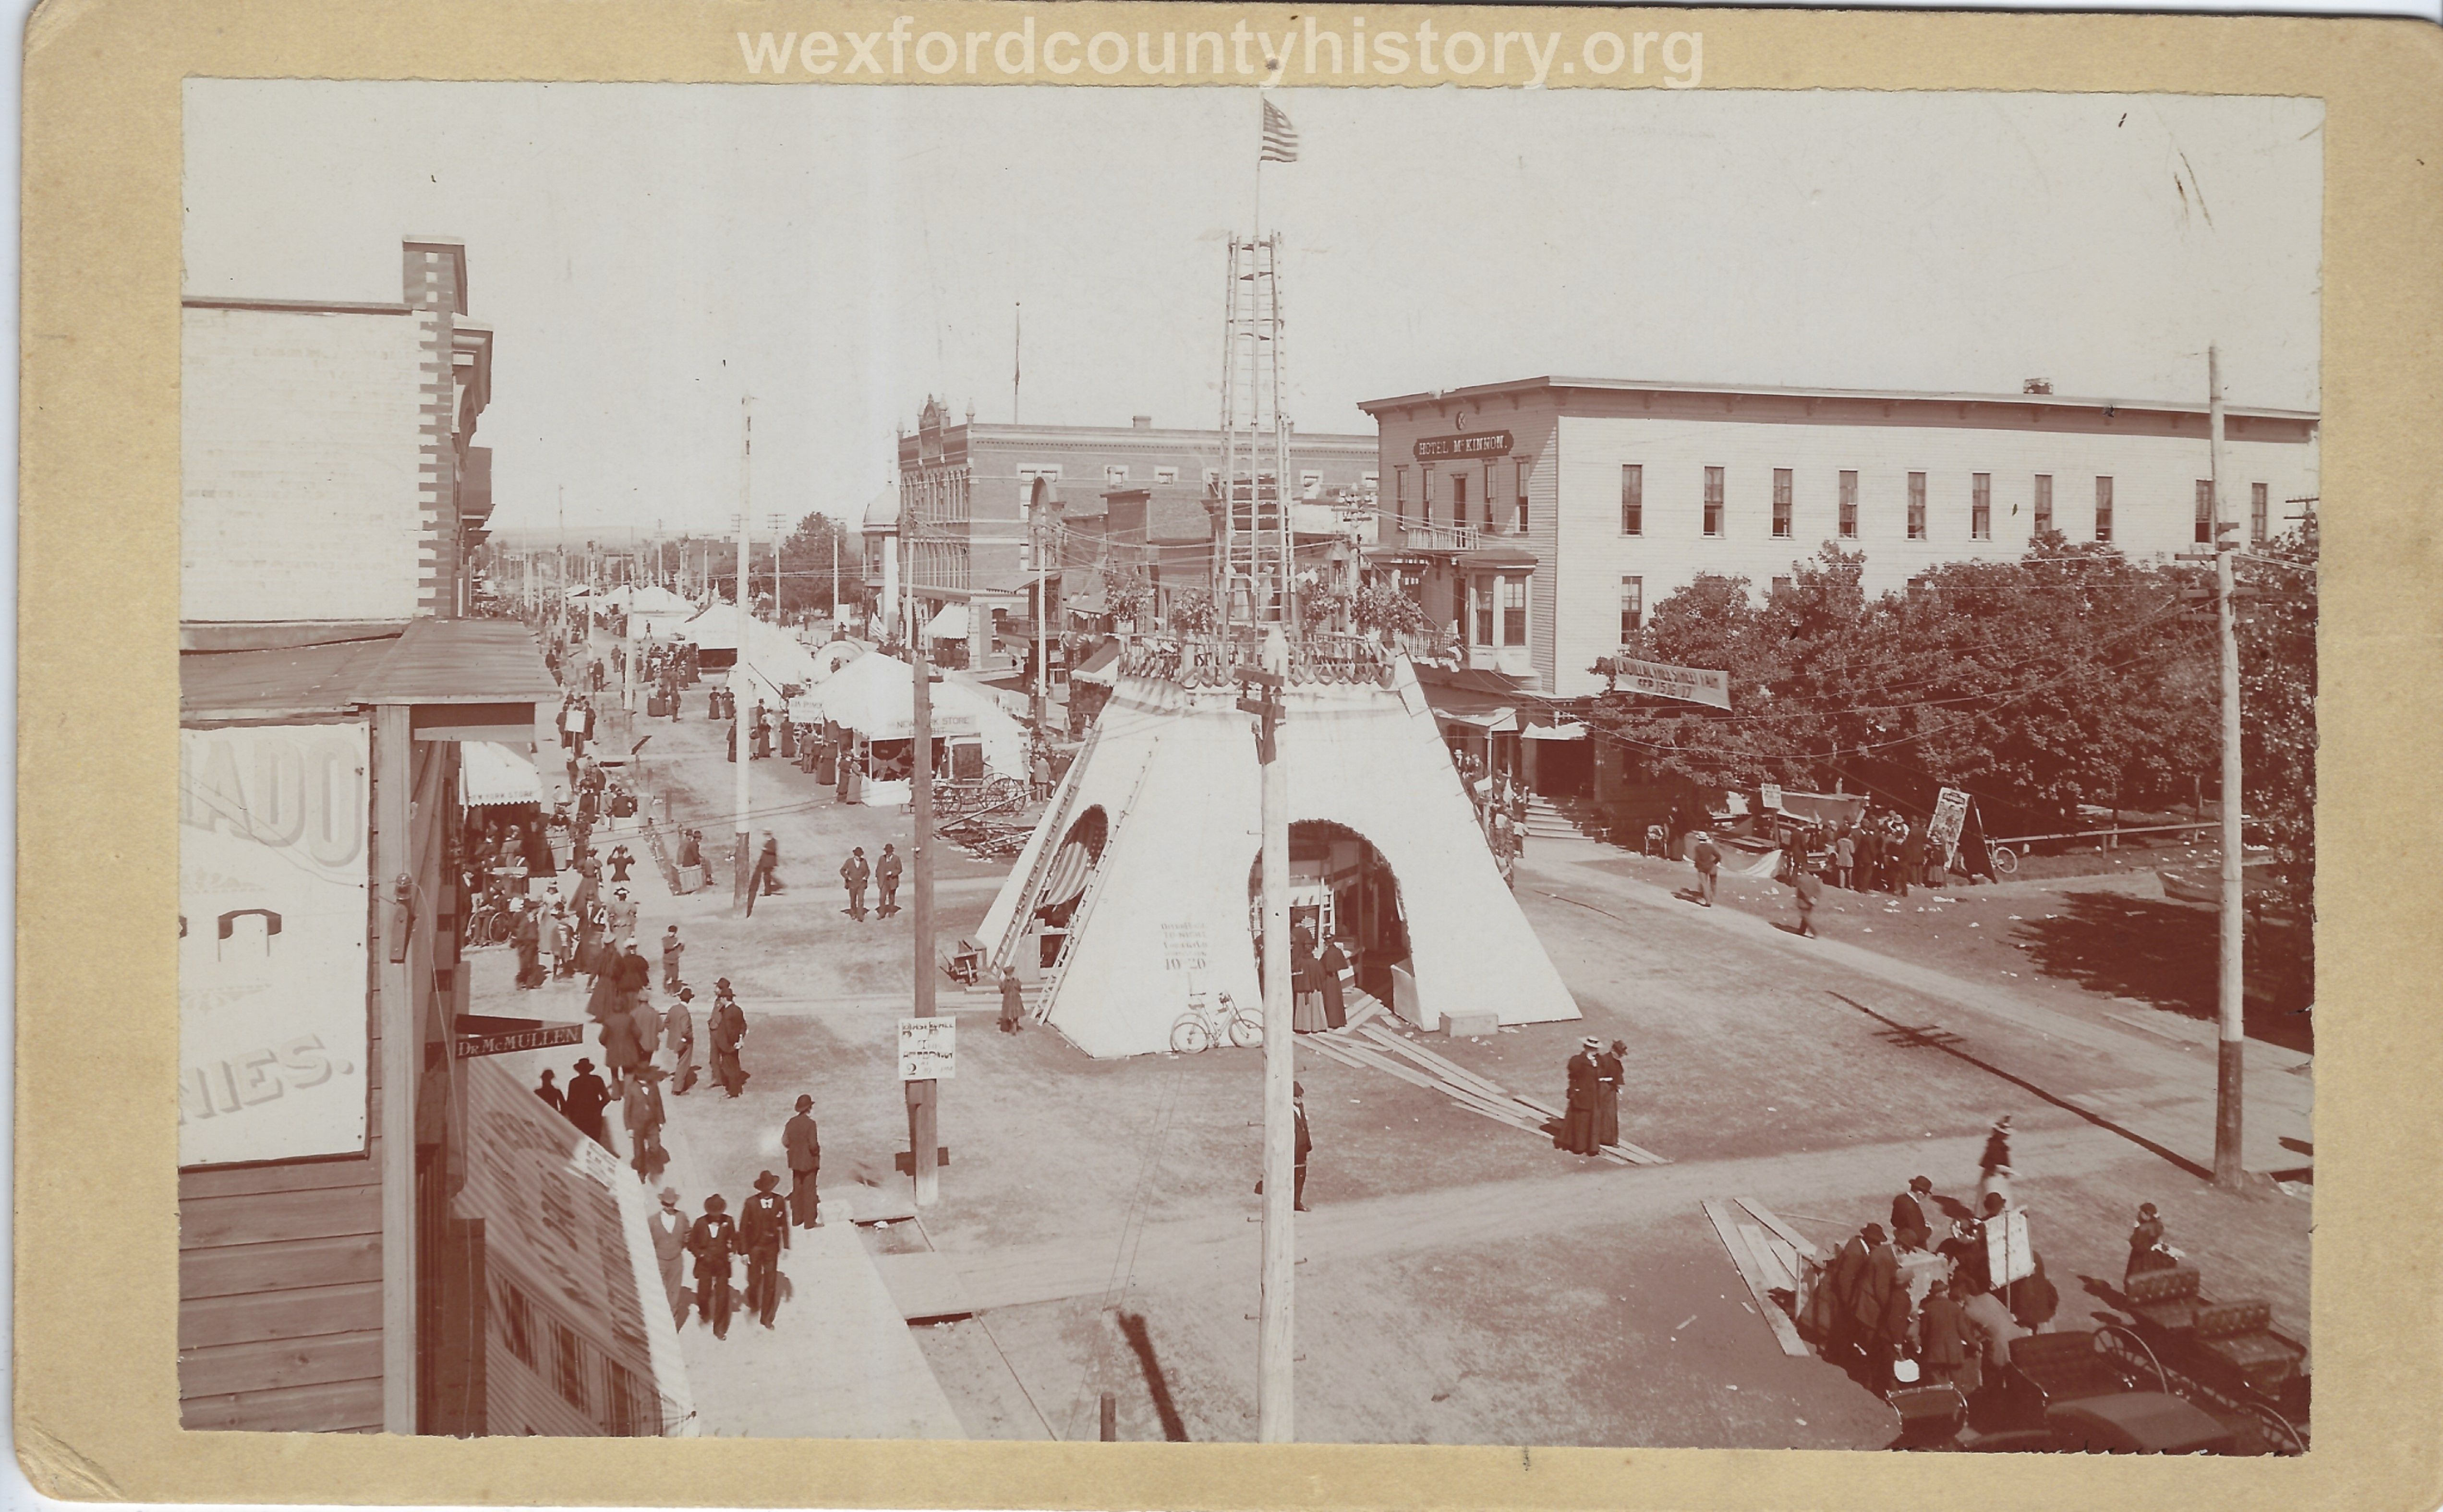 Cadillac-Parade-Free-Fair-on-the-corner-of-Harris-and-Mitchell-1897-09-15-8